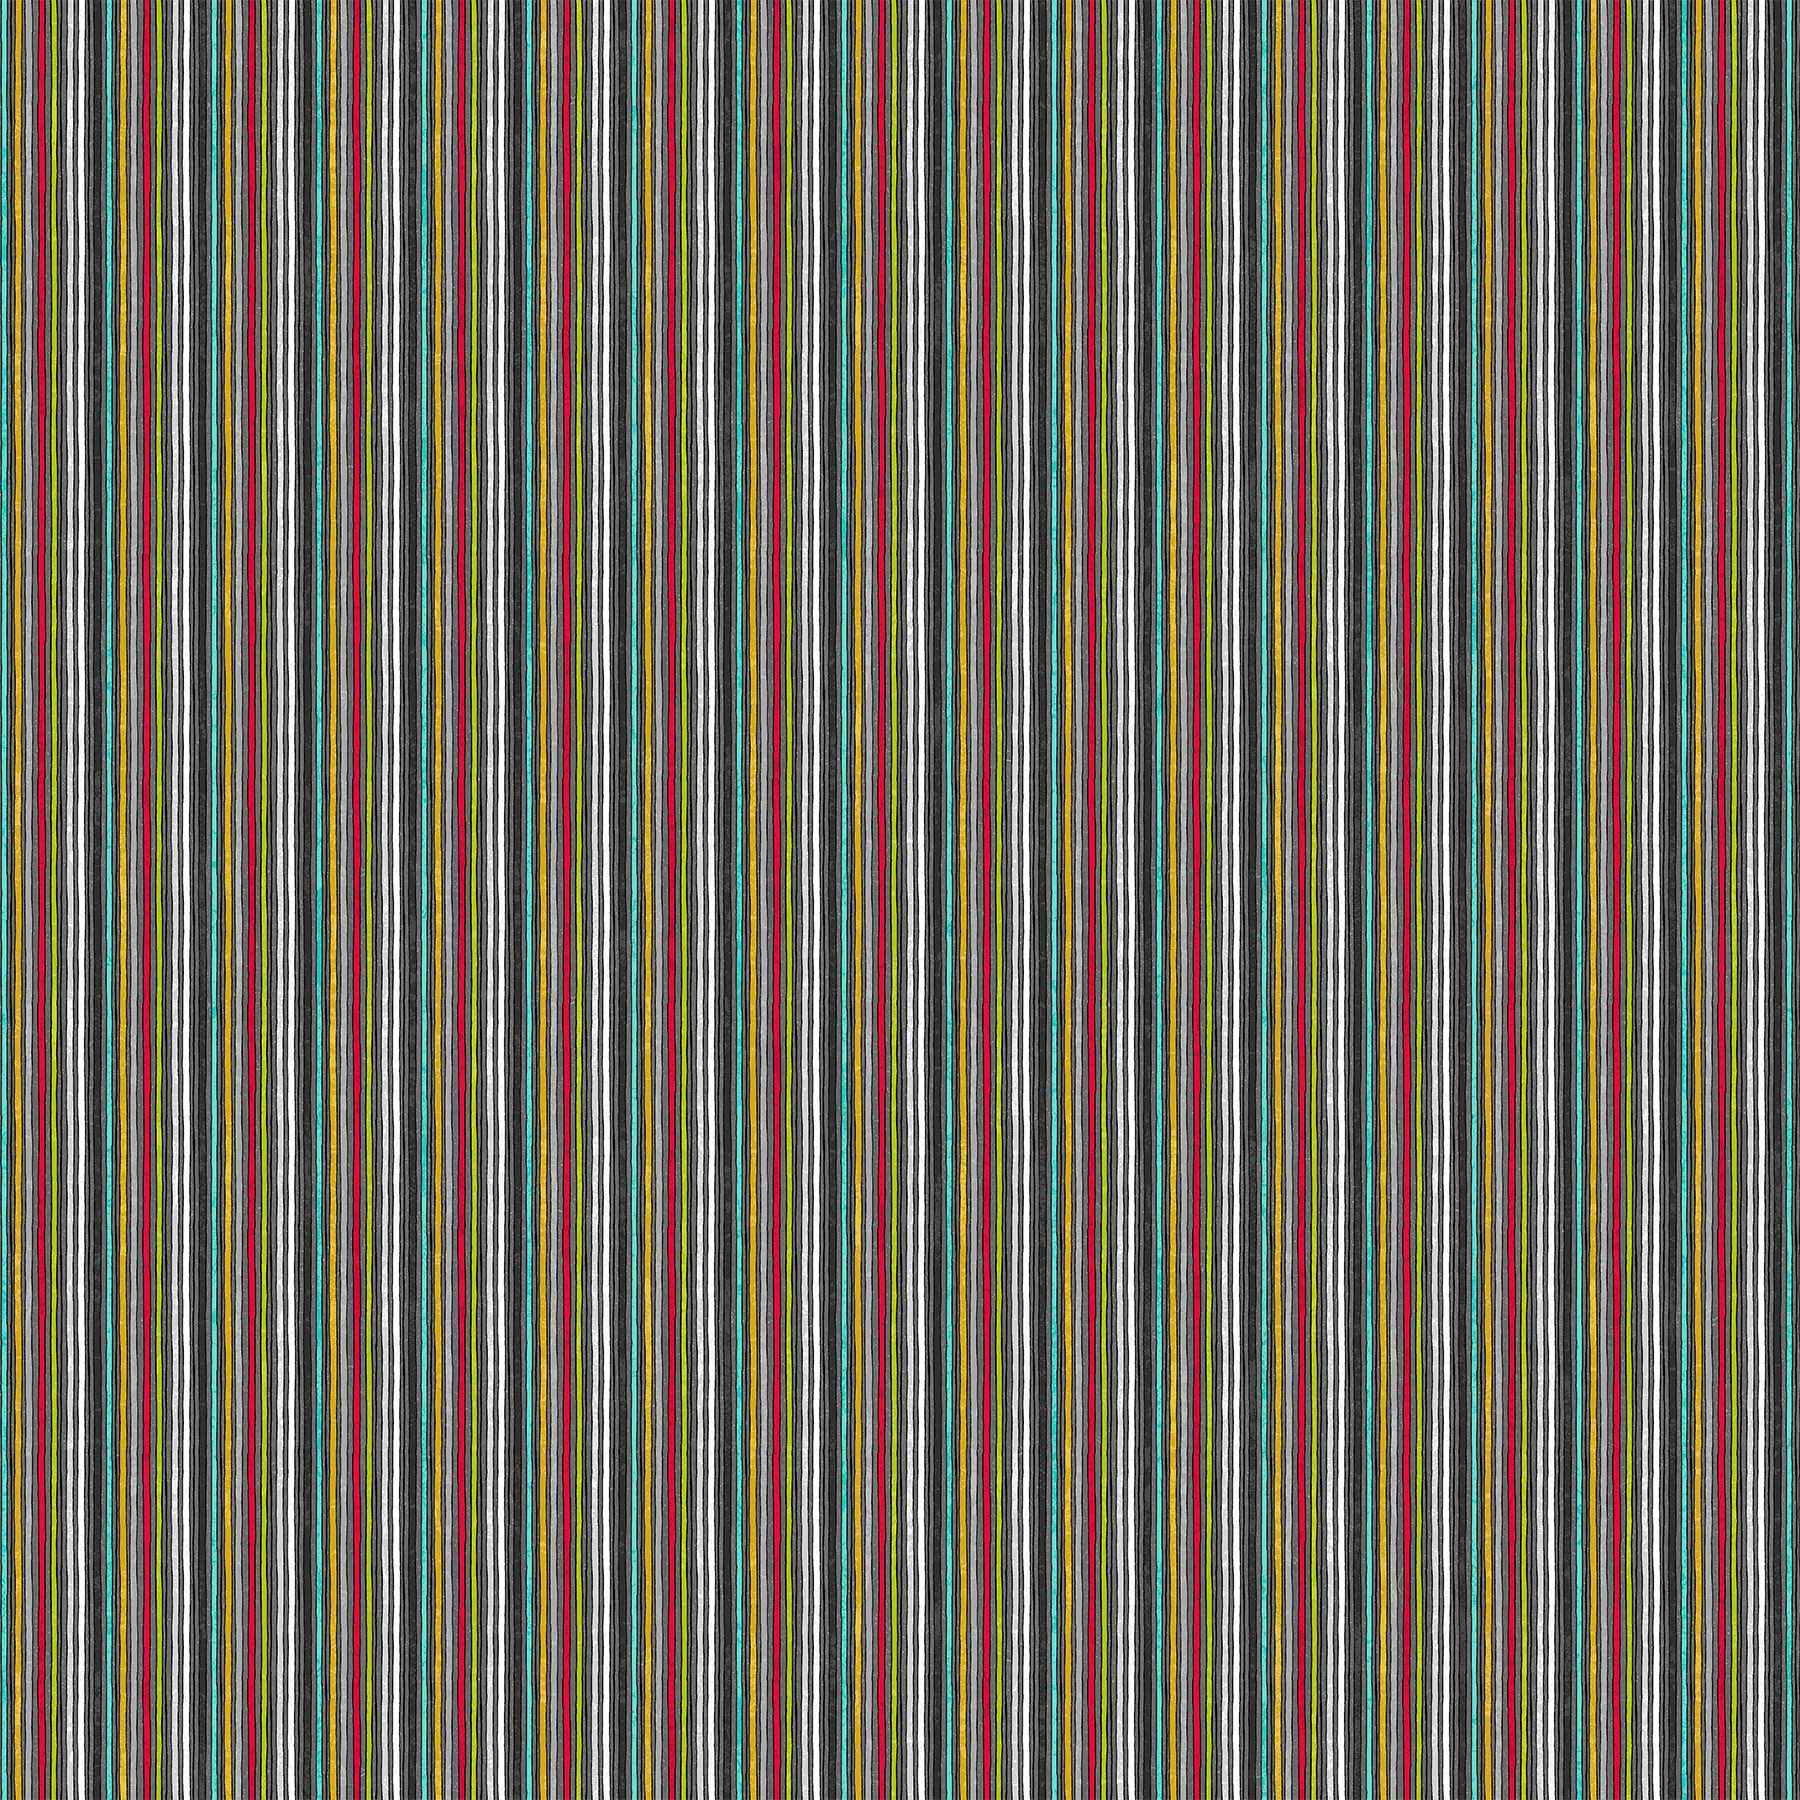 24223-99 Black Multi Colorful Stripe | Sewing Is My Happy Place | by Nina Djuric for Northcott Fabrics